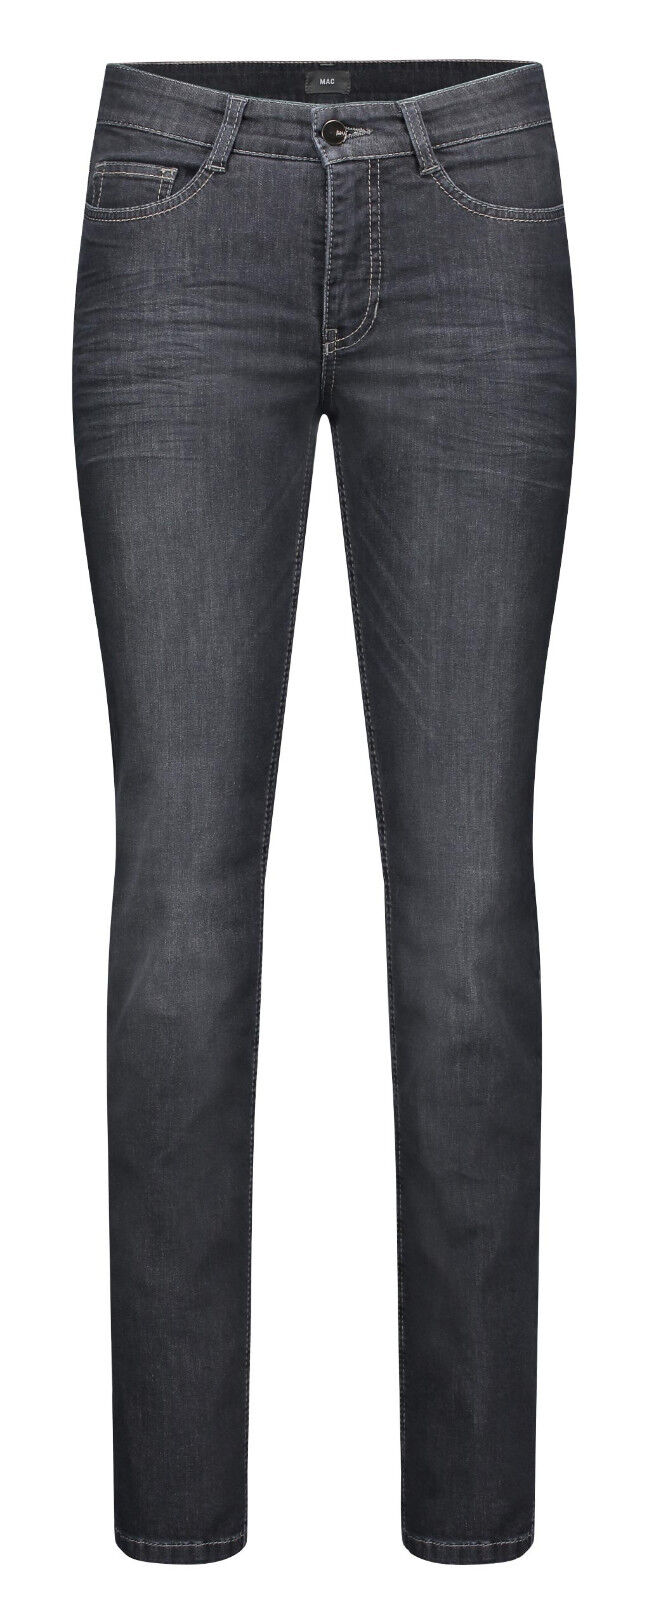 MAC Damen Jeans Angela 5240 NEU dark grau used D929